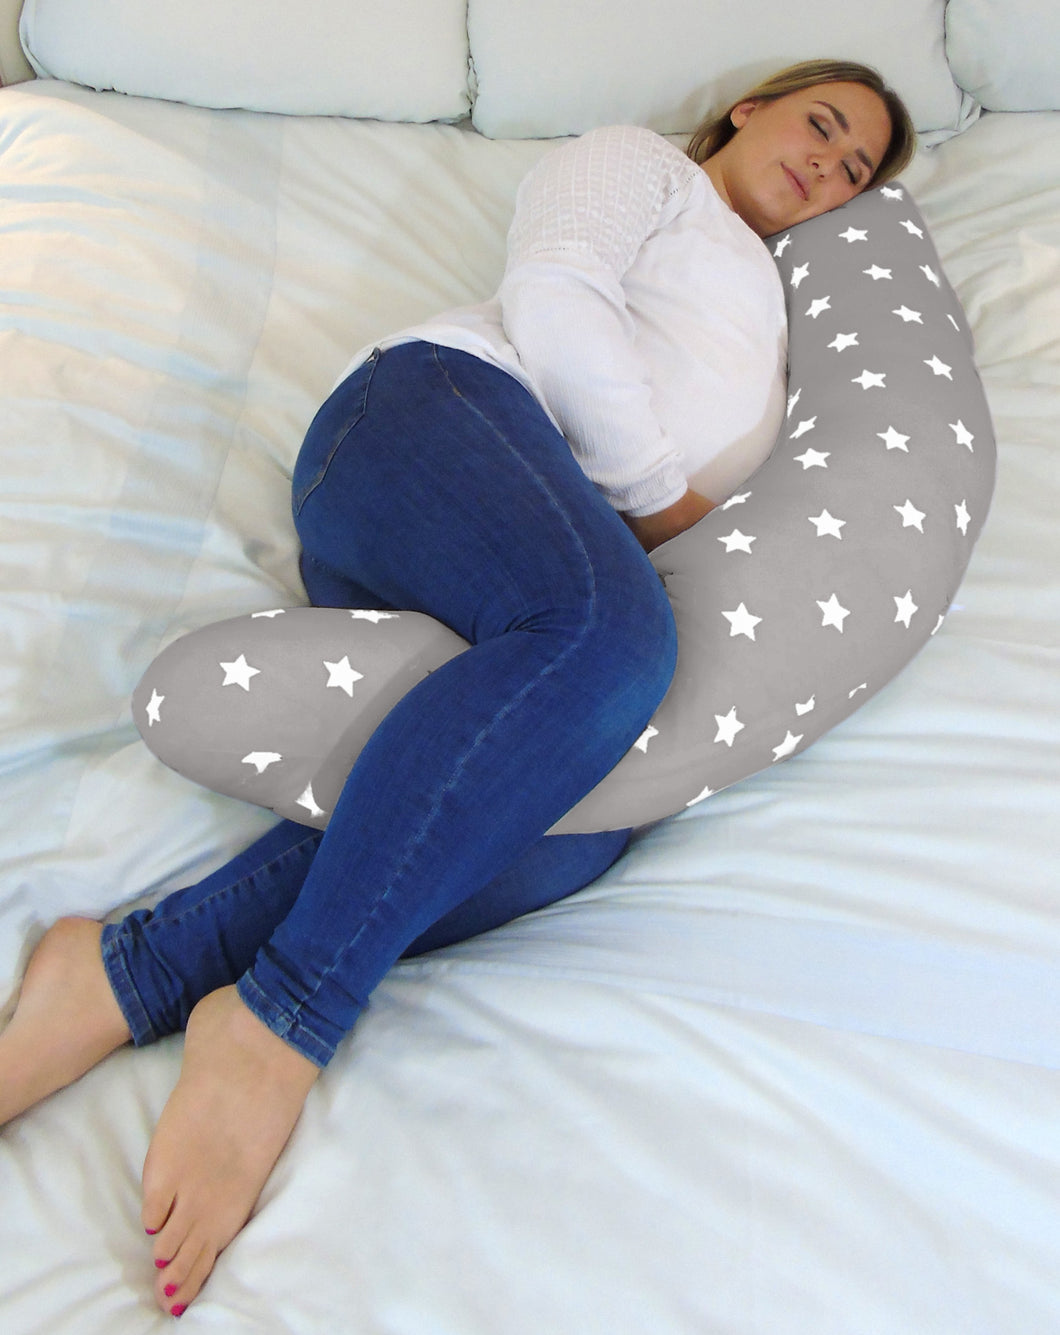 Sleep Solution Support Widgey Plus Pregnancy and Sleep Pillow/Body Support - Night Star Print